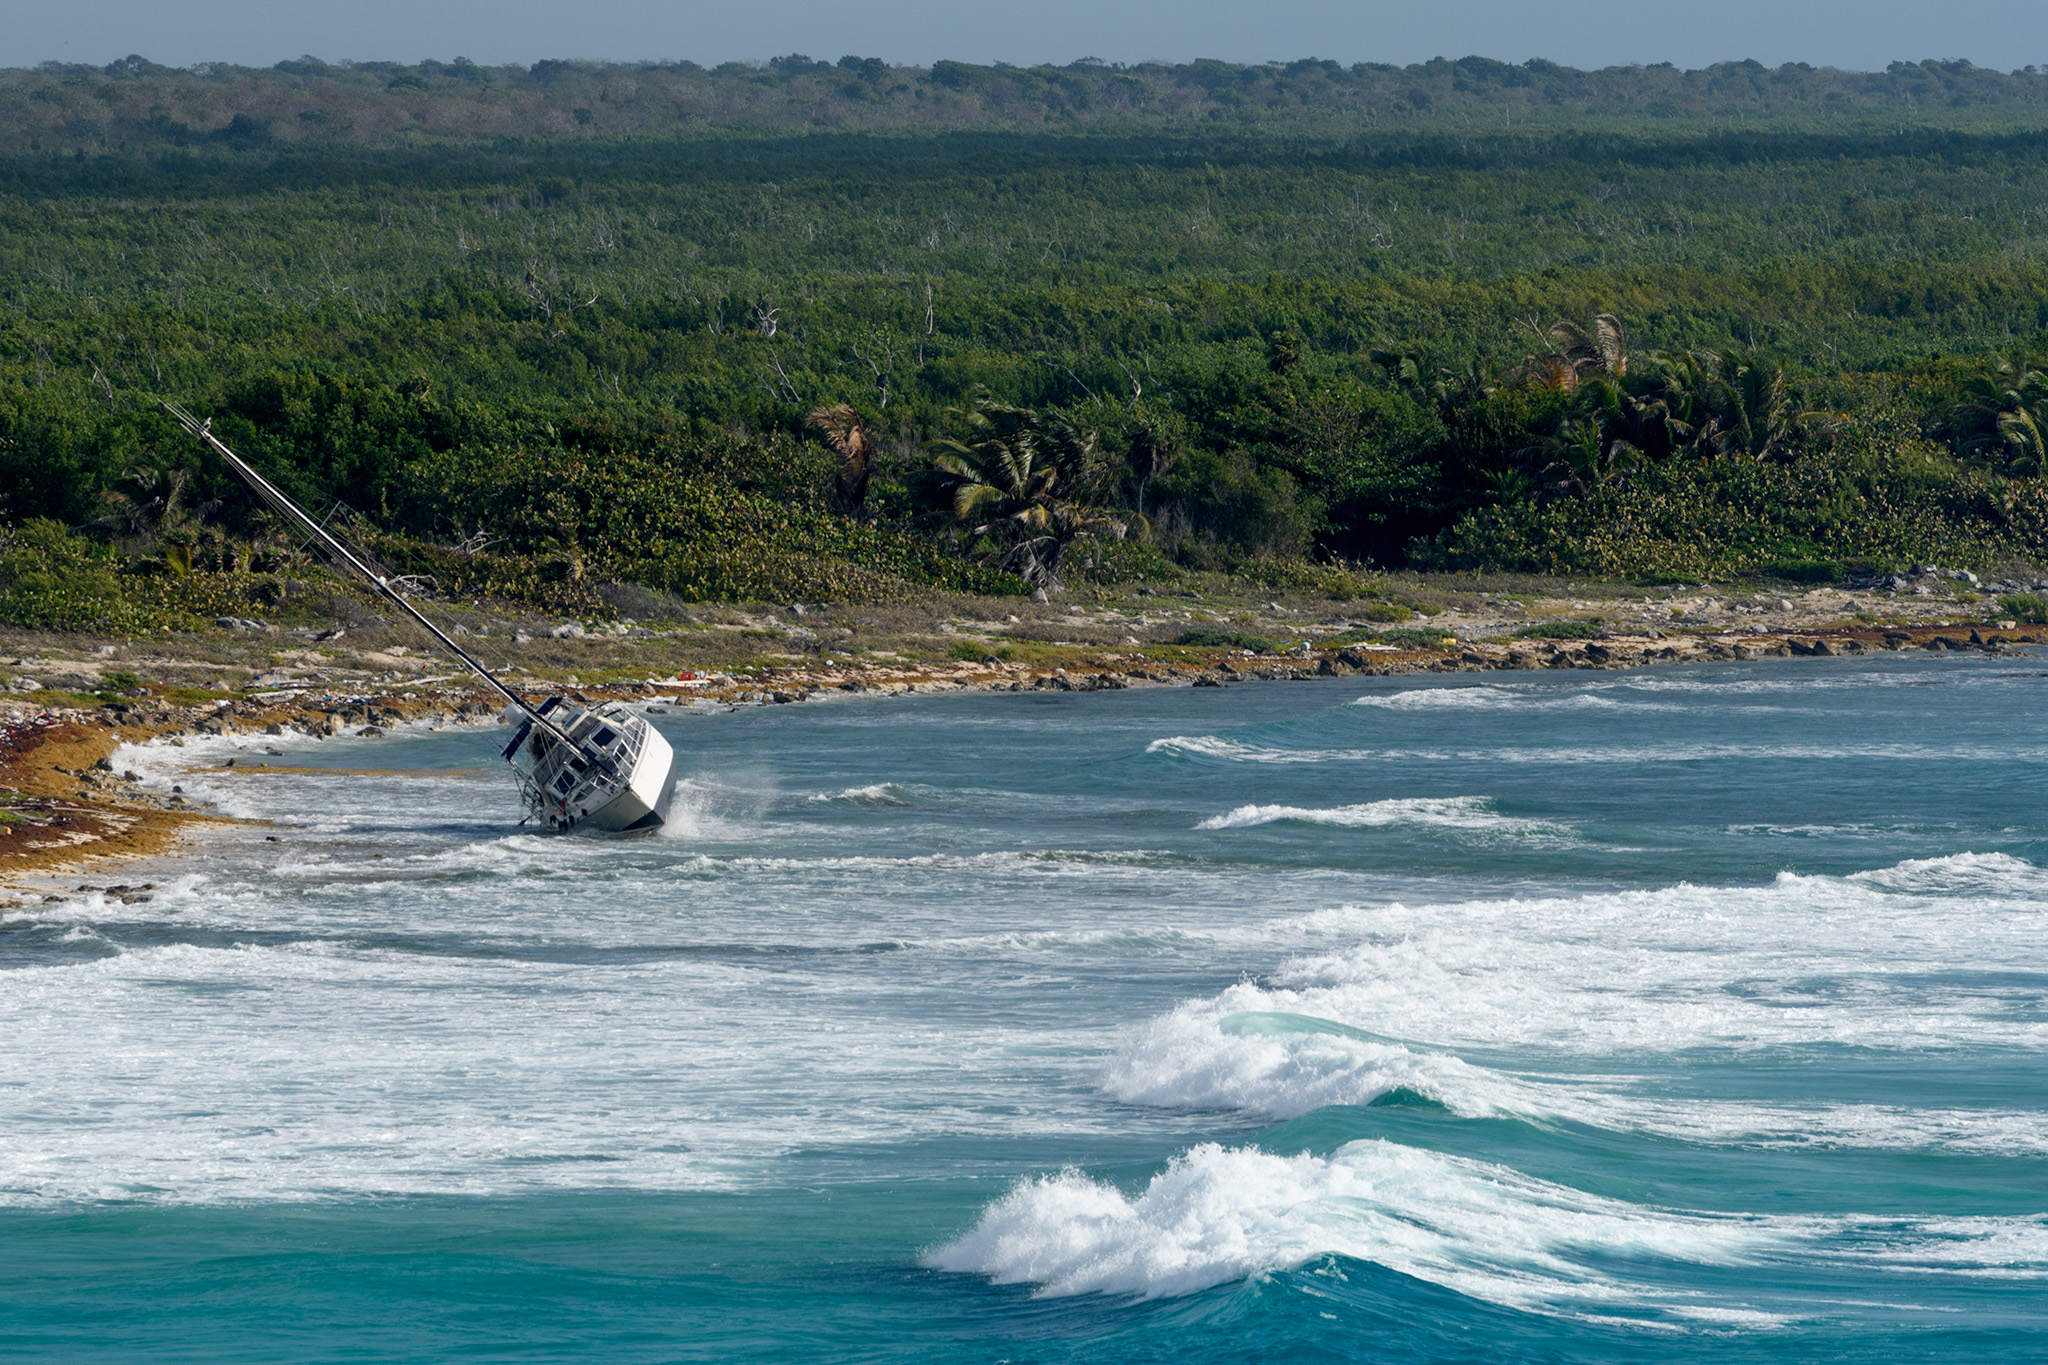 This wreck was already there, but it's clear how it could happen based on teh size of these waves!